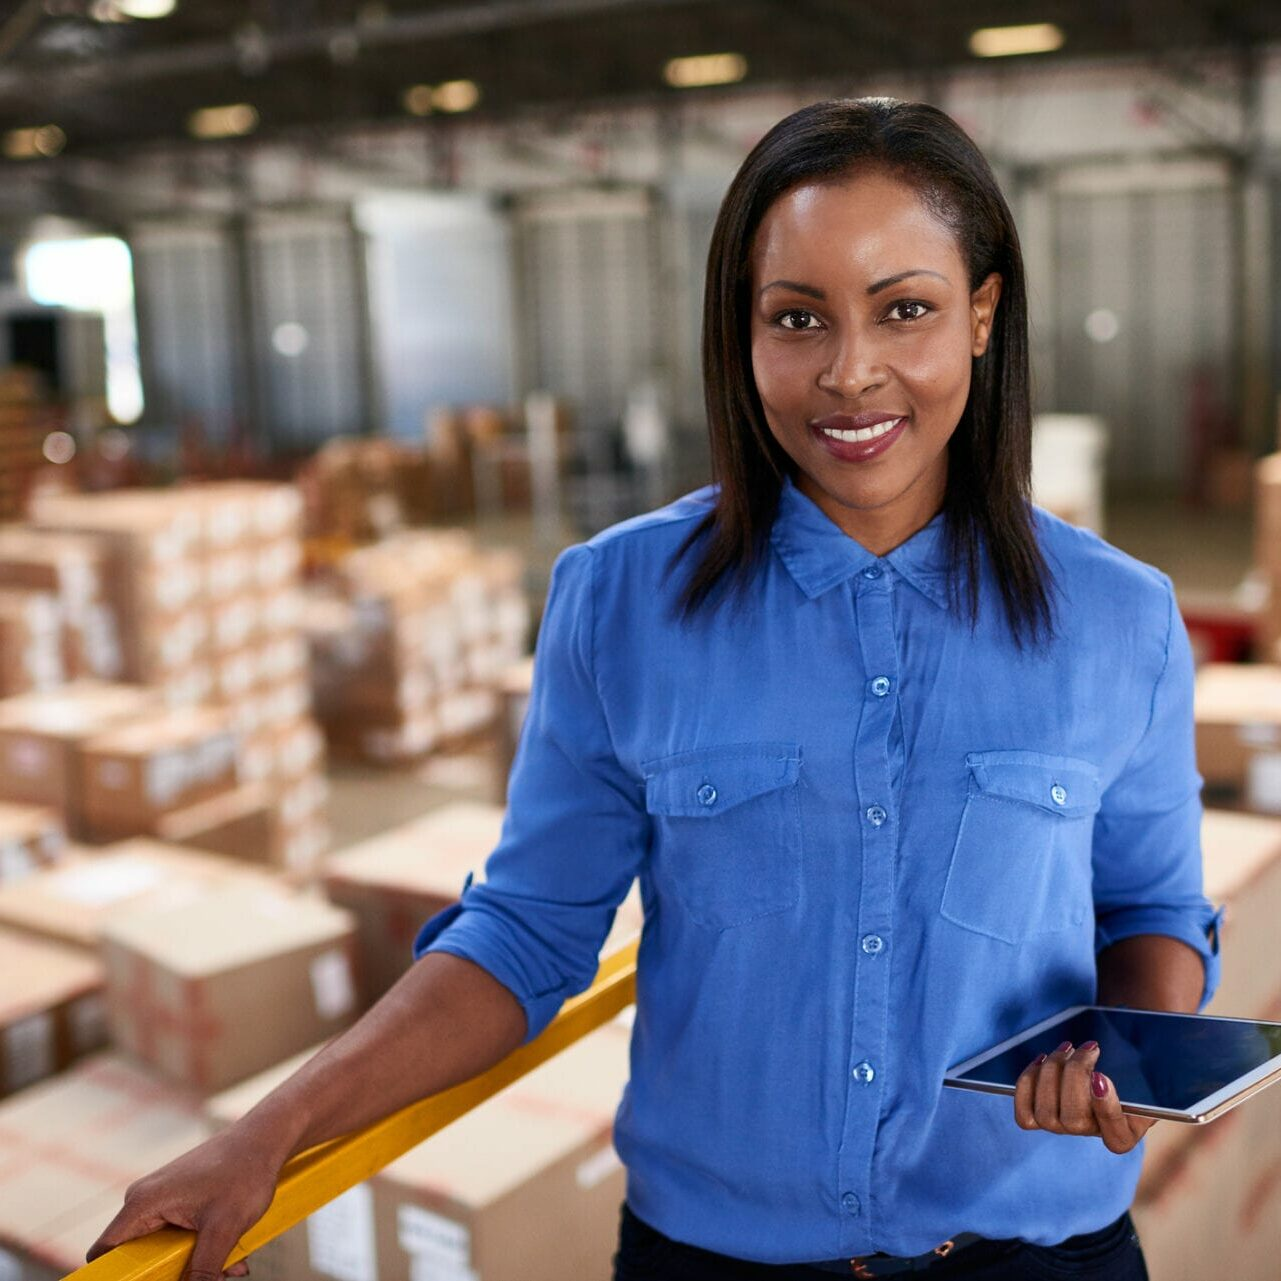 Portrait of a smiling worker holding a digital tablet while standing in a large warehouse full of boxes